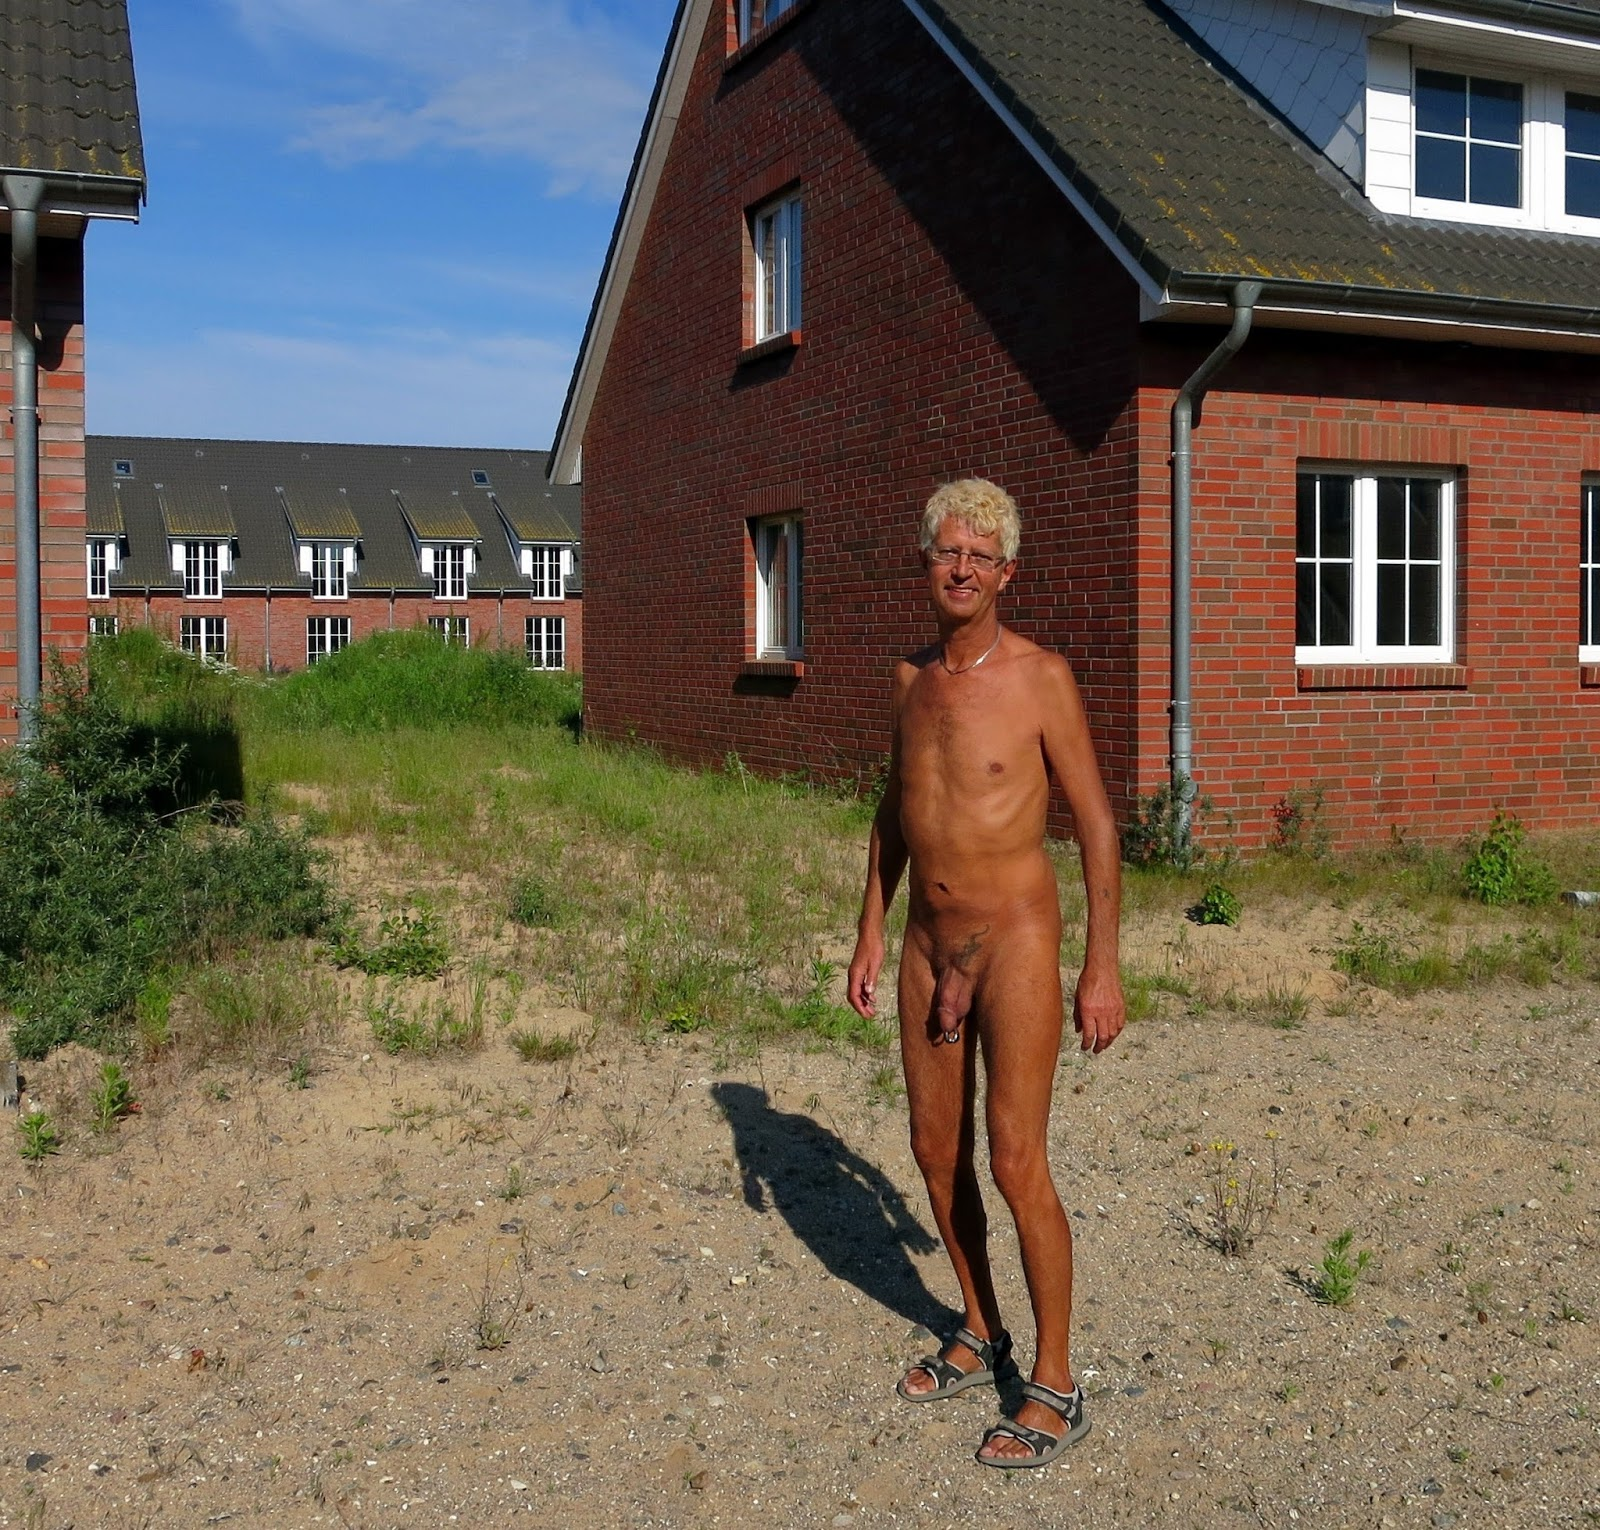 Male Nude Exhibitionist